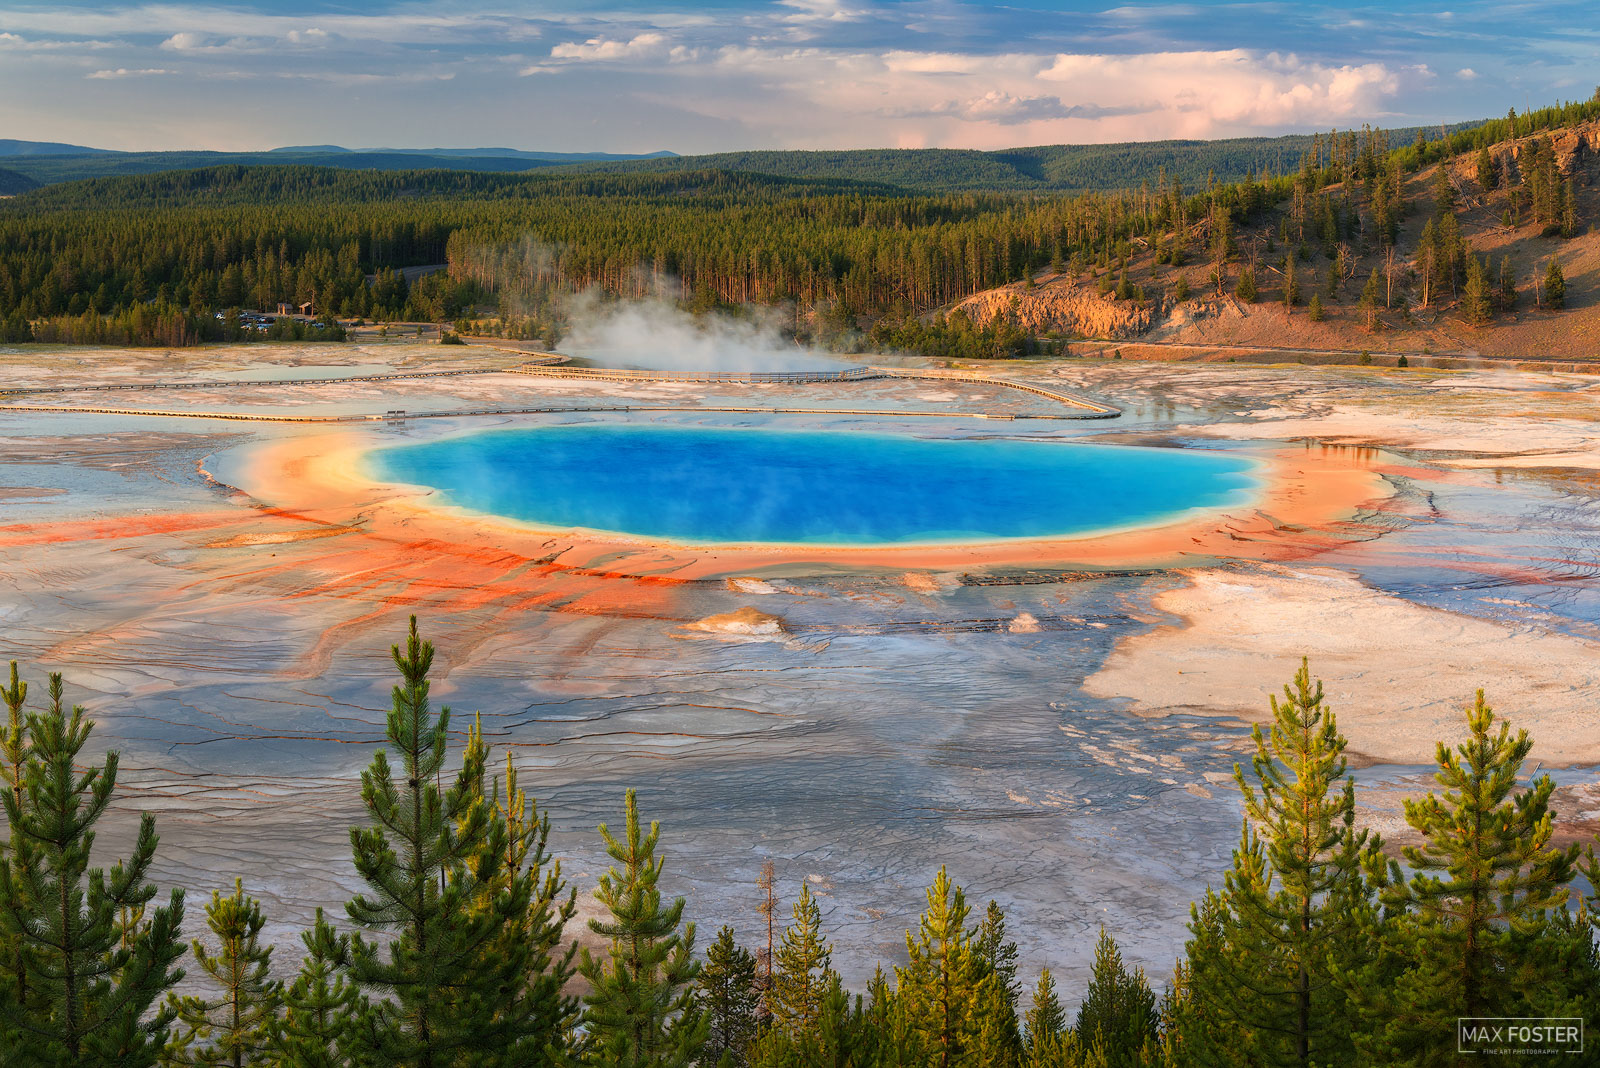 Fine Art Limited Edition of 50 The Grand Prismatic Spring in Yellowstone National Park is the largest hot spring in the United...